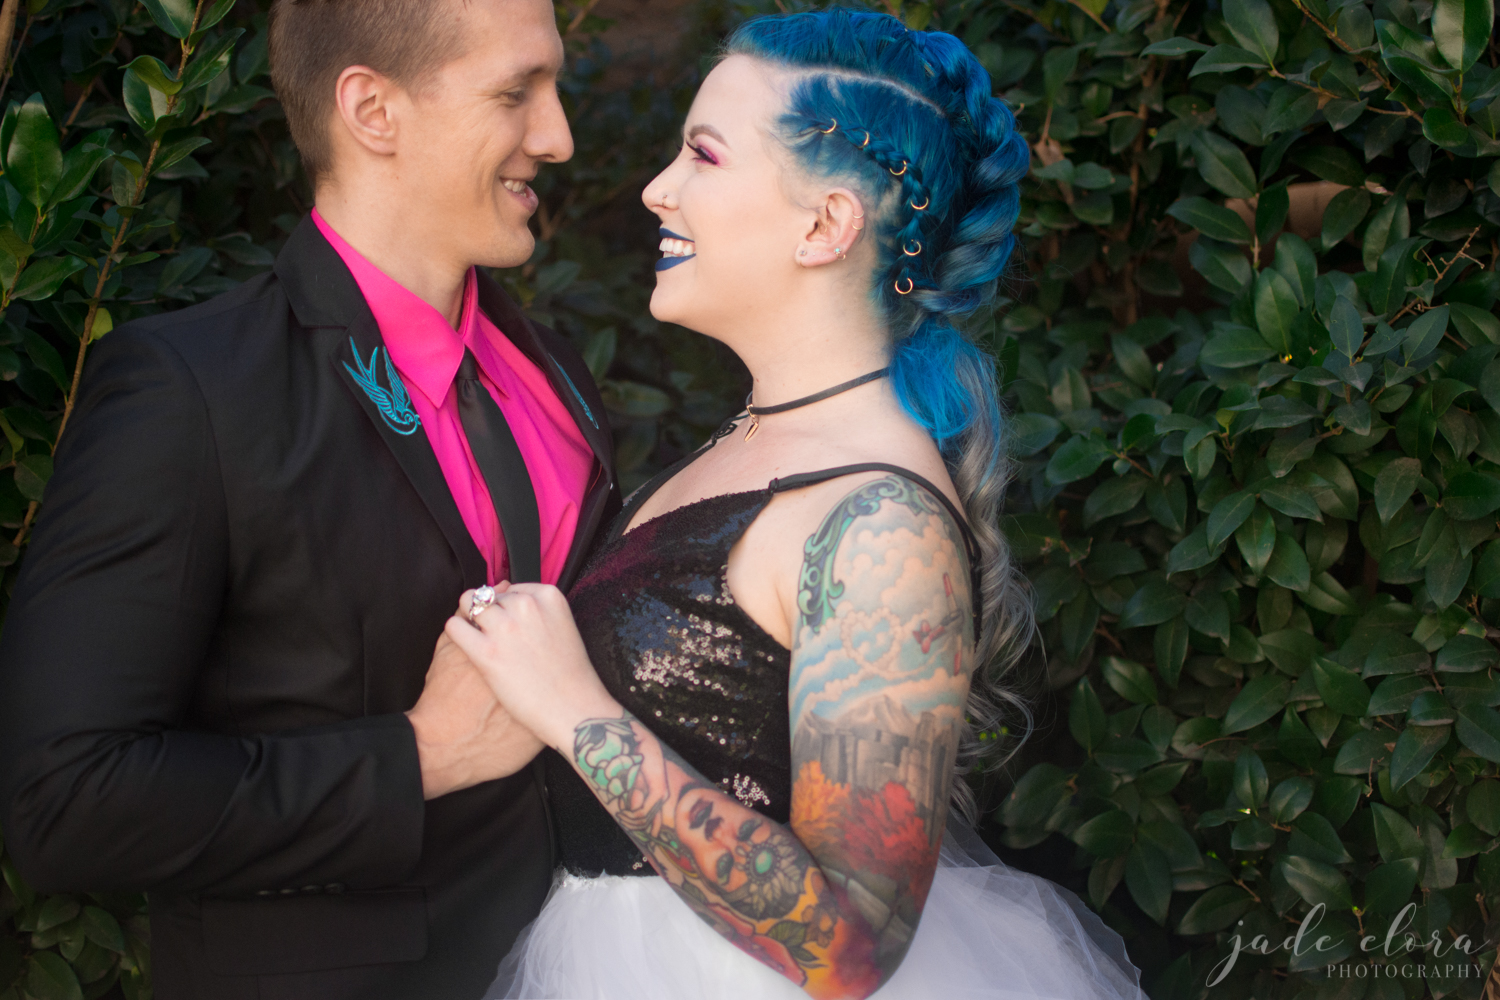 Colorful-Punk-Wedding-LA-3-2.jpg